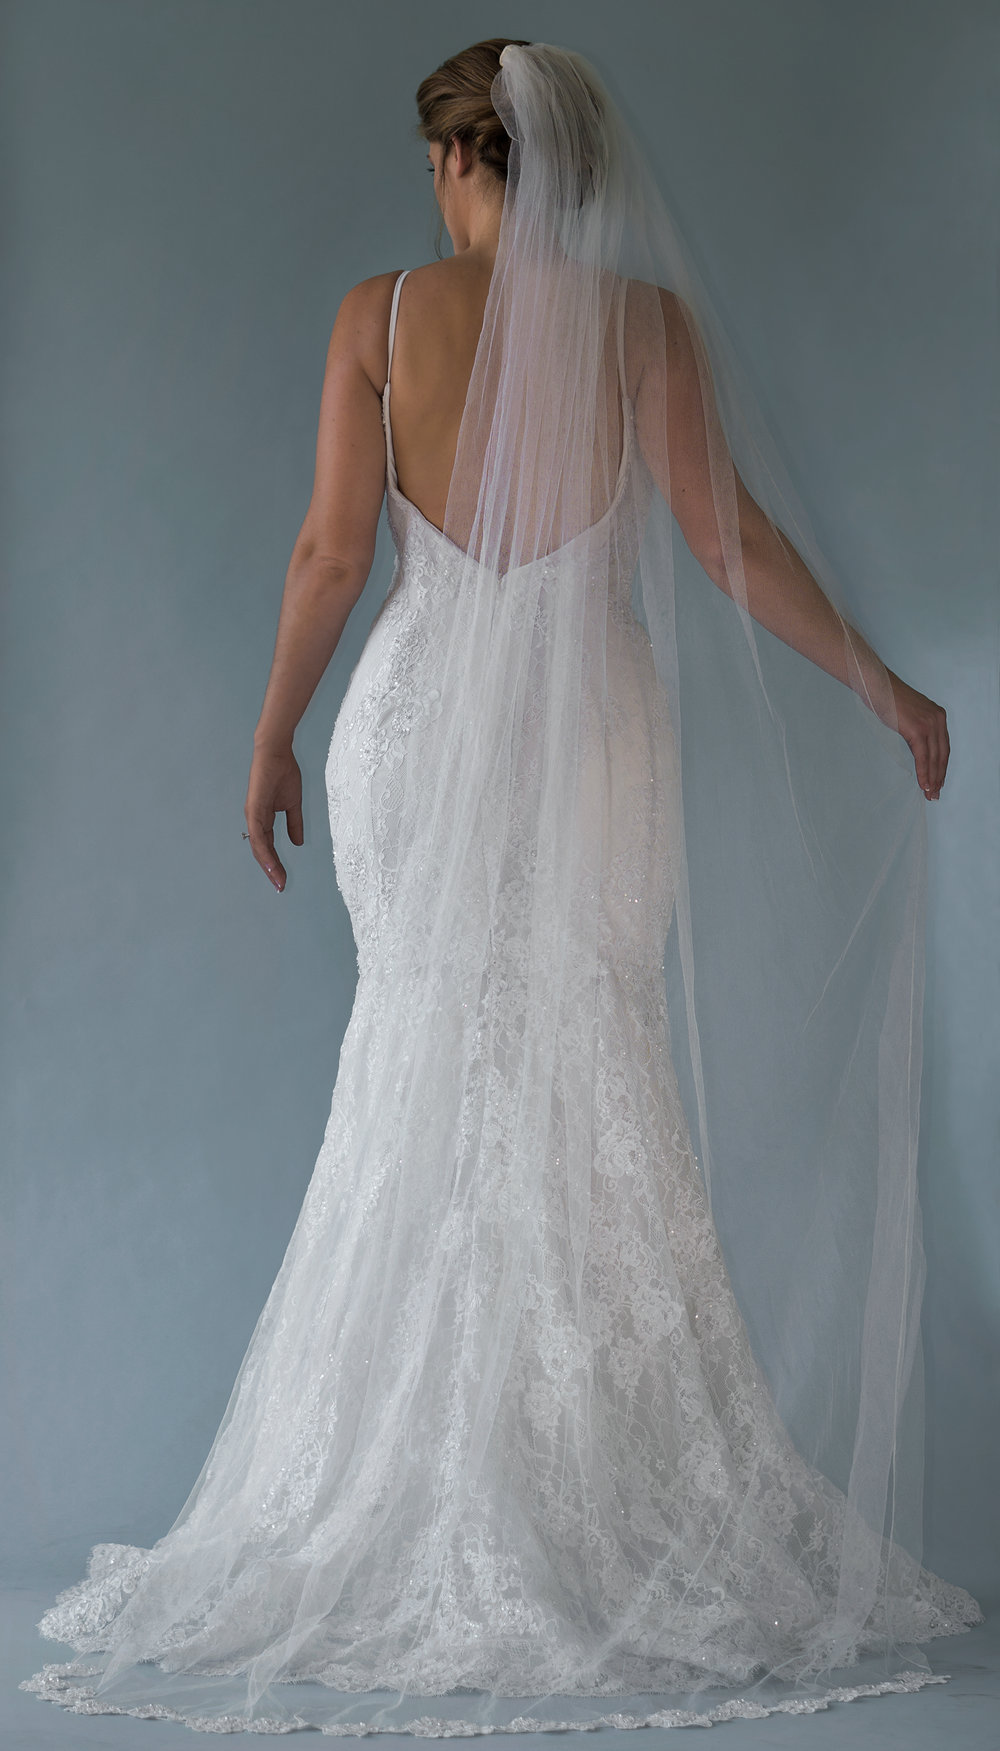 Stella Gown - From the Fall 2018 Collection - Plunging V-neck lace bodice with illusion insert and thin straps. Form fitting and sitting very low on the back. Mermaid style with wide horsehair for structure. Invisible zipper closure.Each dress is made by hand in the USA by our designers.  Shown here with our Cathedral length silk veil edged along the end with coordinating Alencon lace.